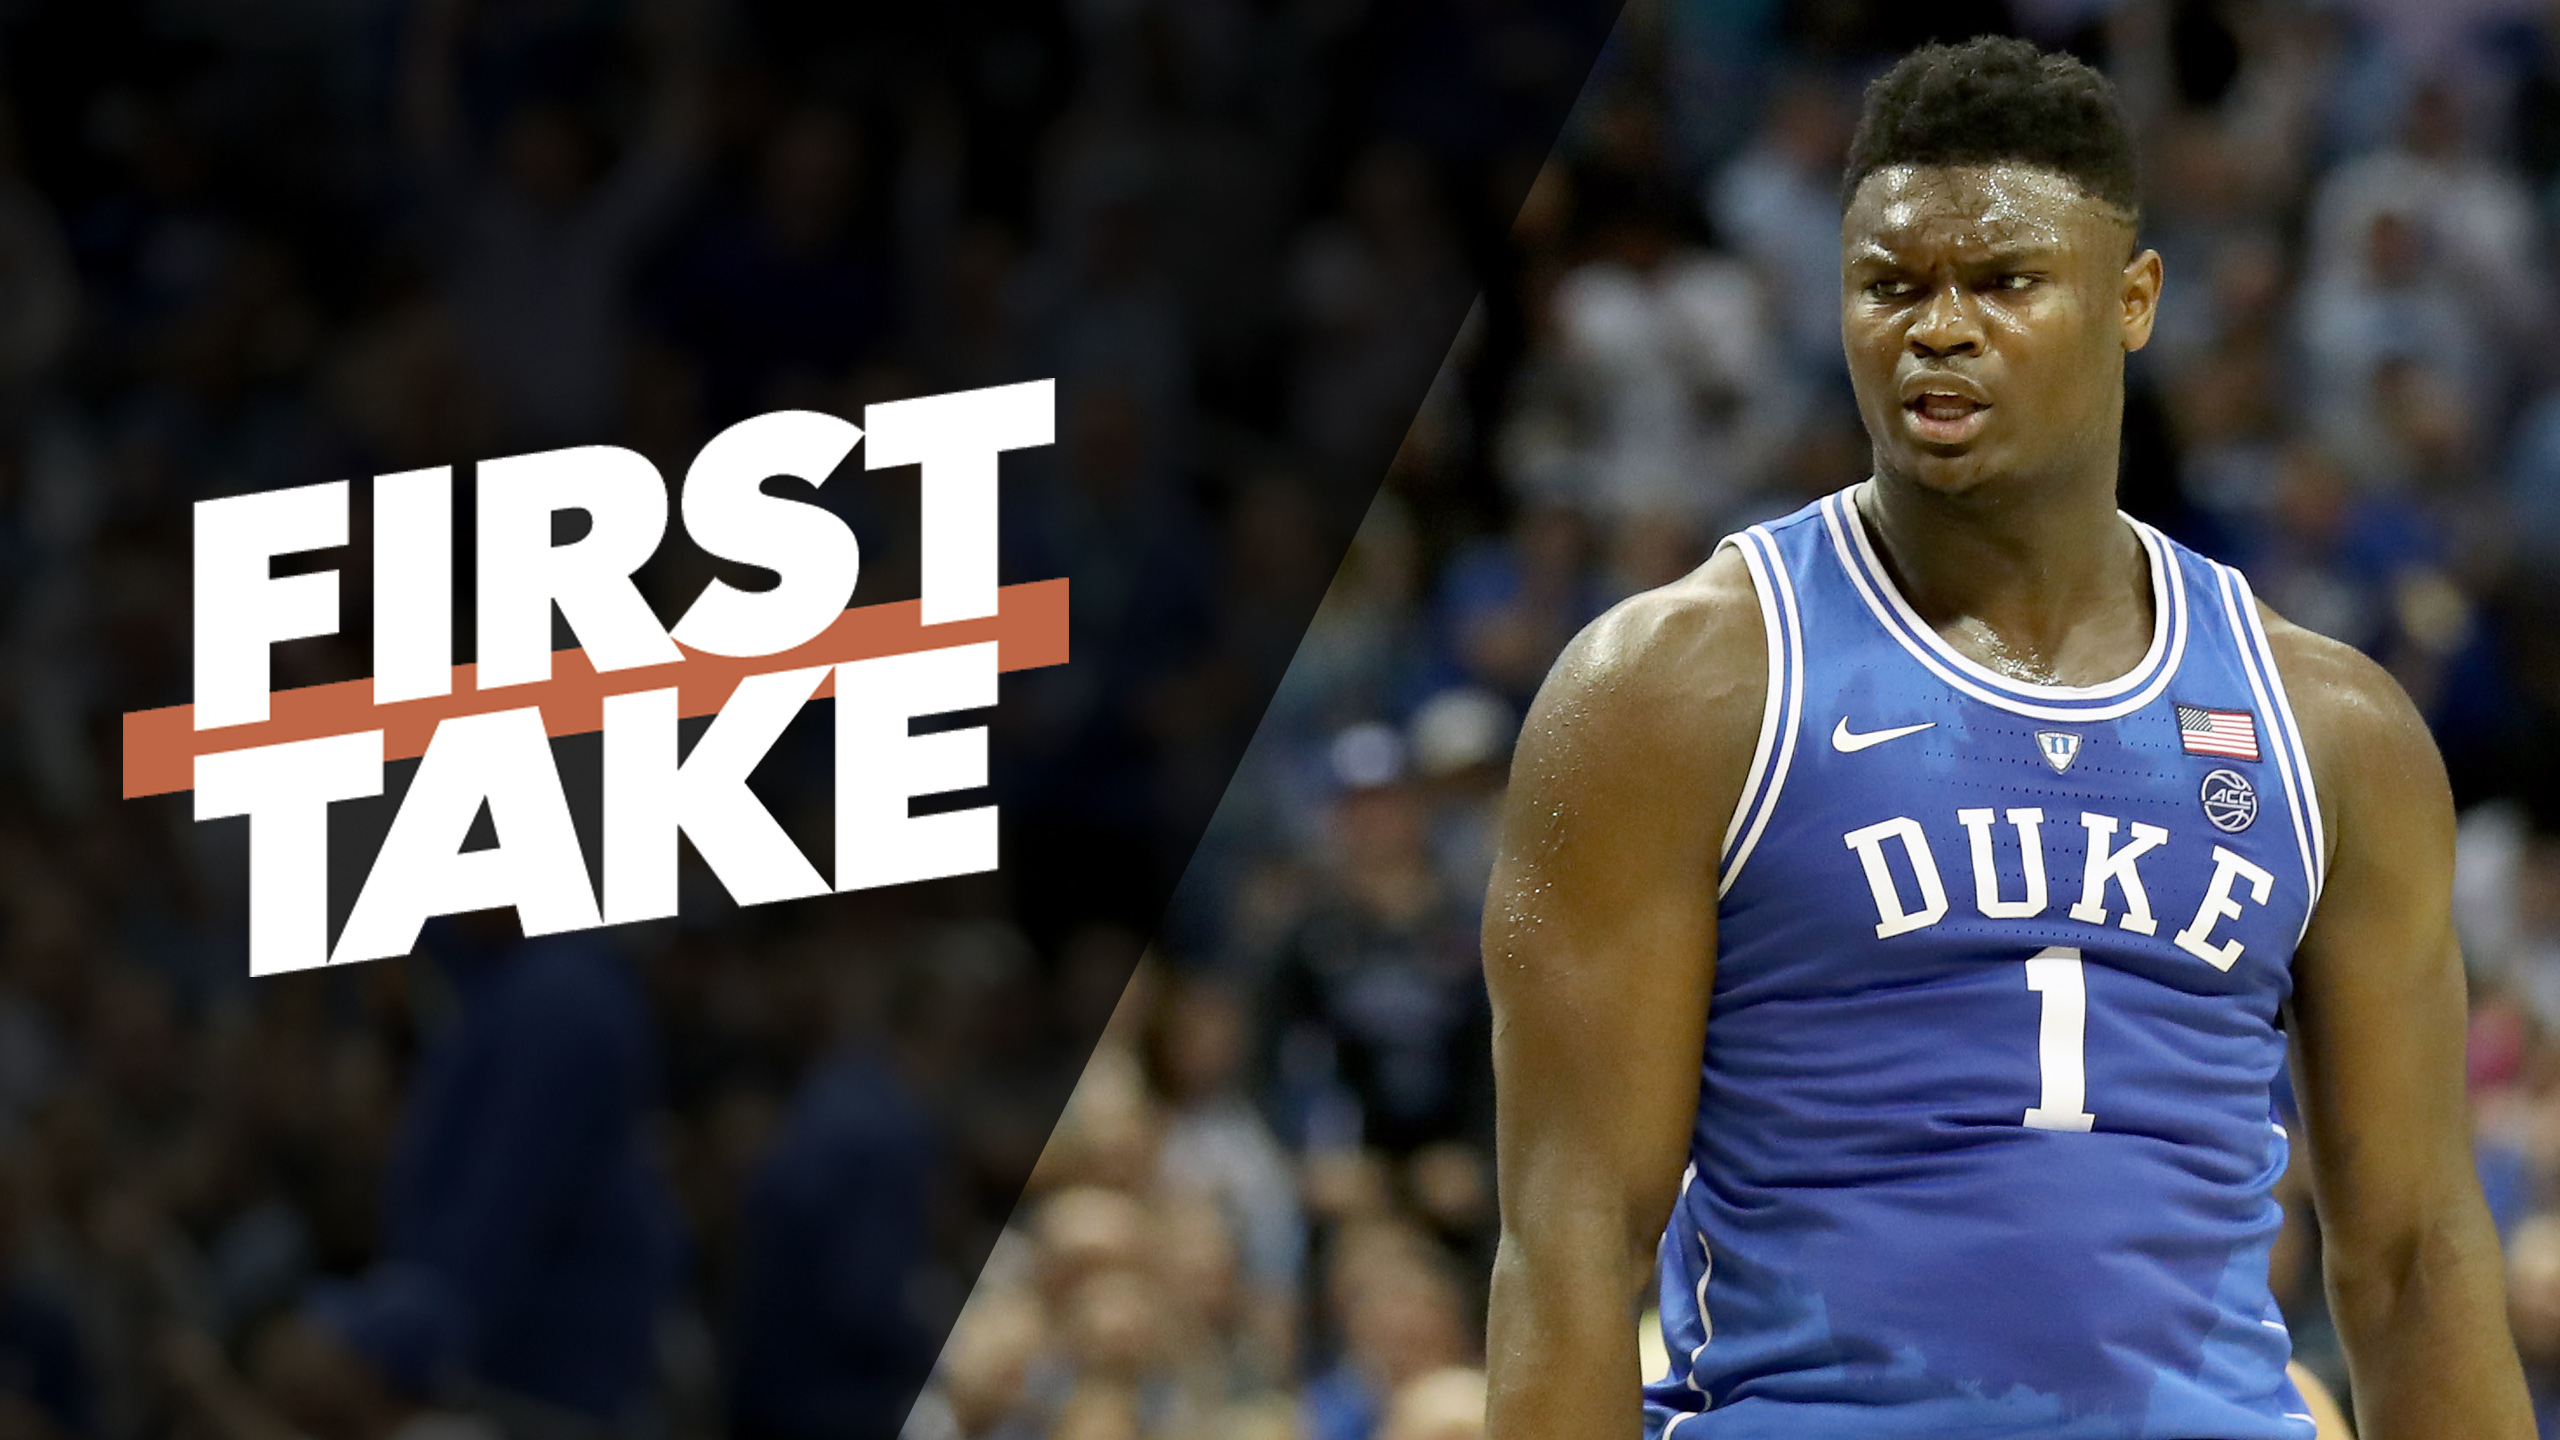 First Take: Tournament Challenge Marathon Presented by Boost Mobile